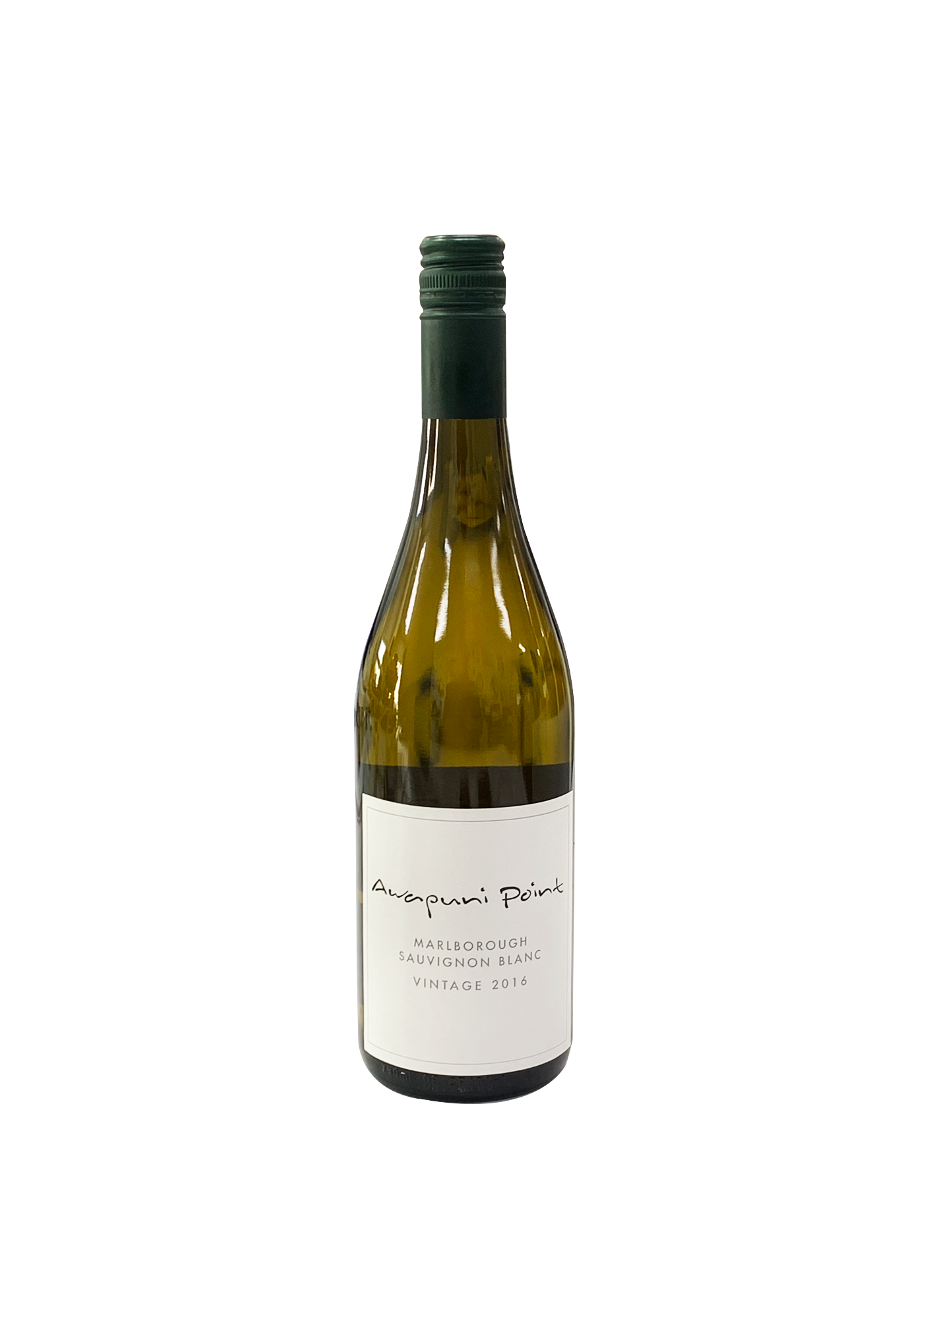 Awapuni Point Marlborough Sauvignon Blanc 2016